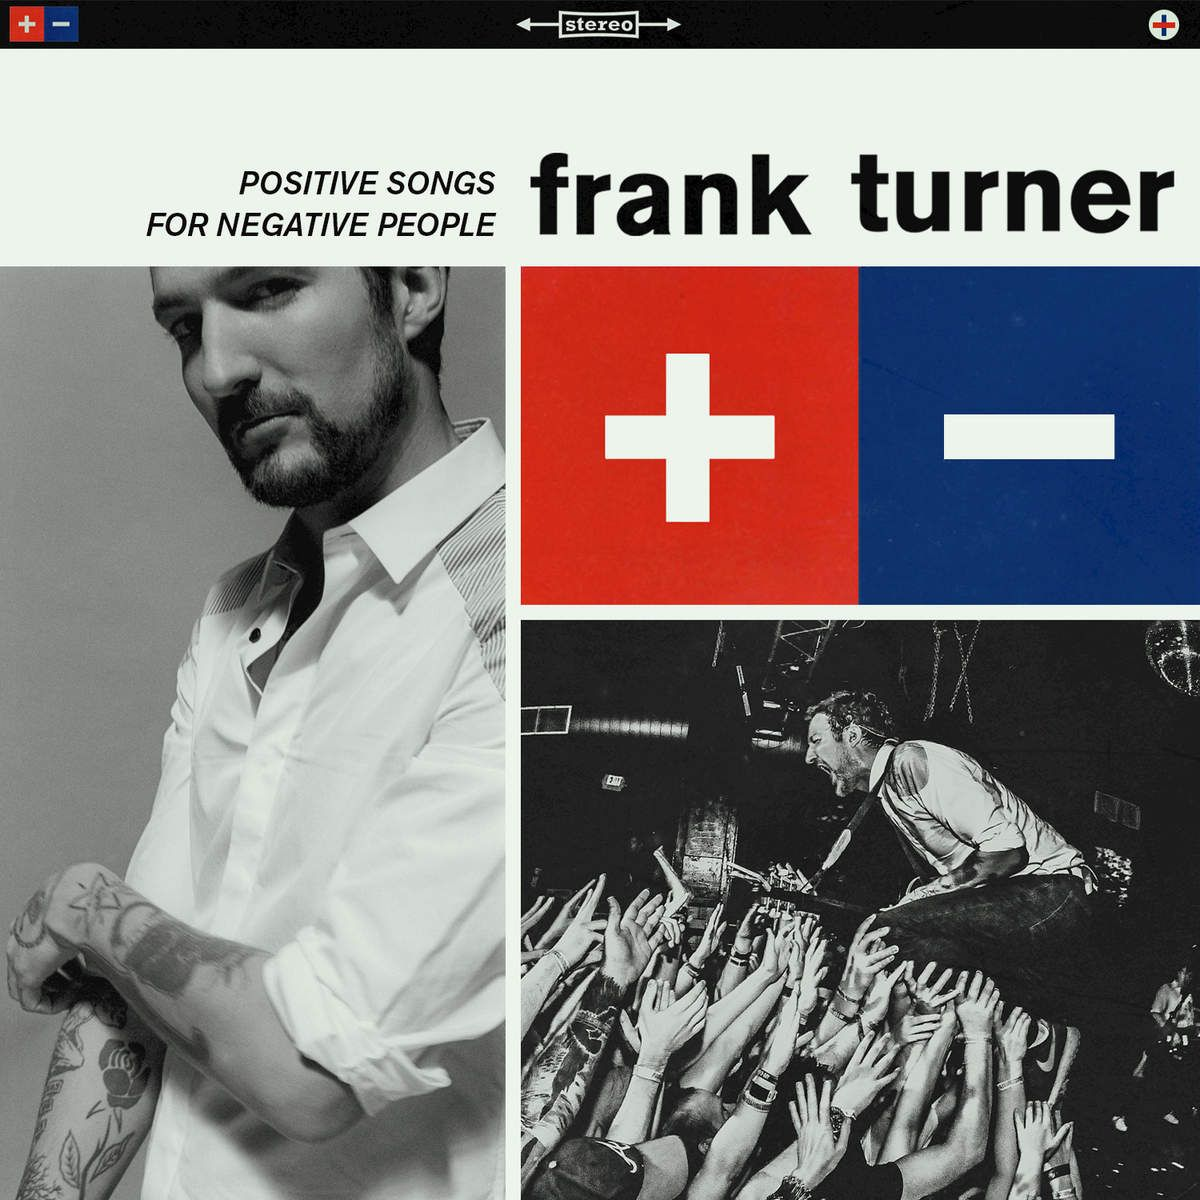 Frank Turner - Positive Songs For Negative People album cover